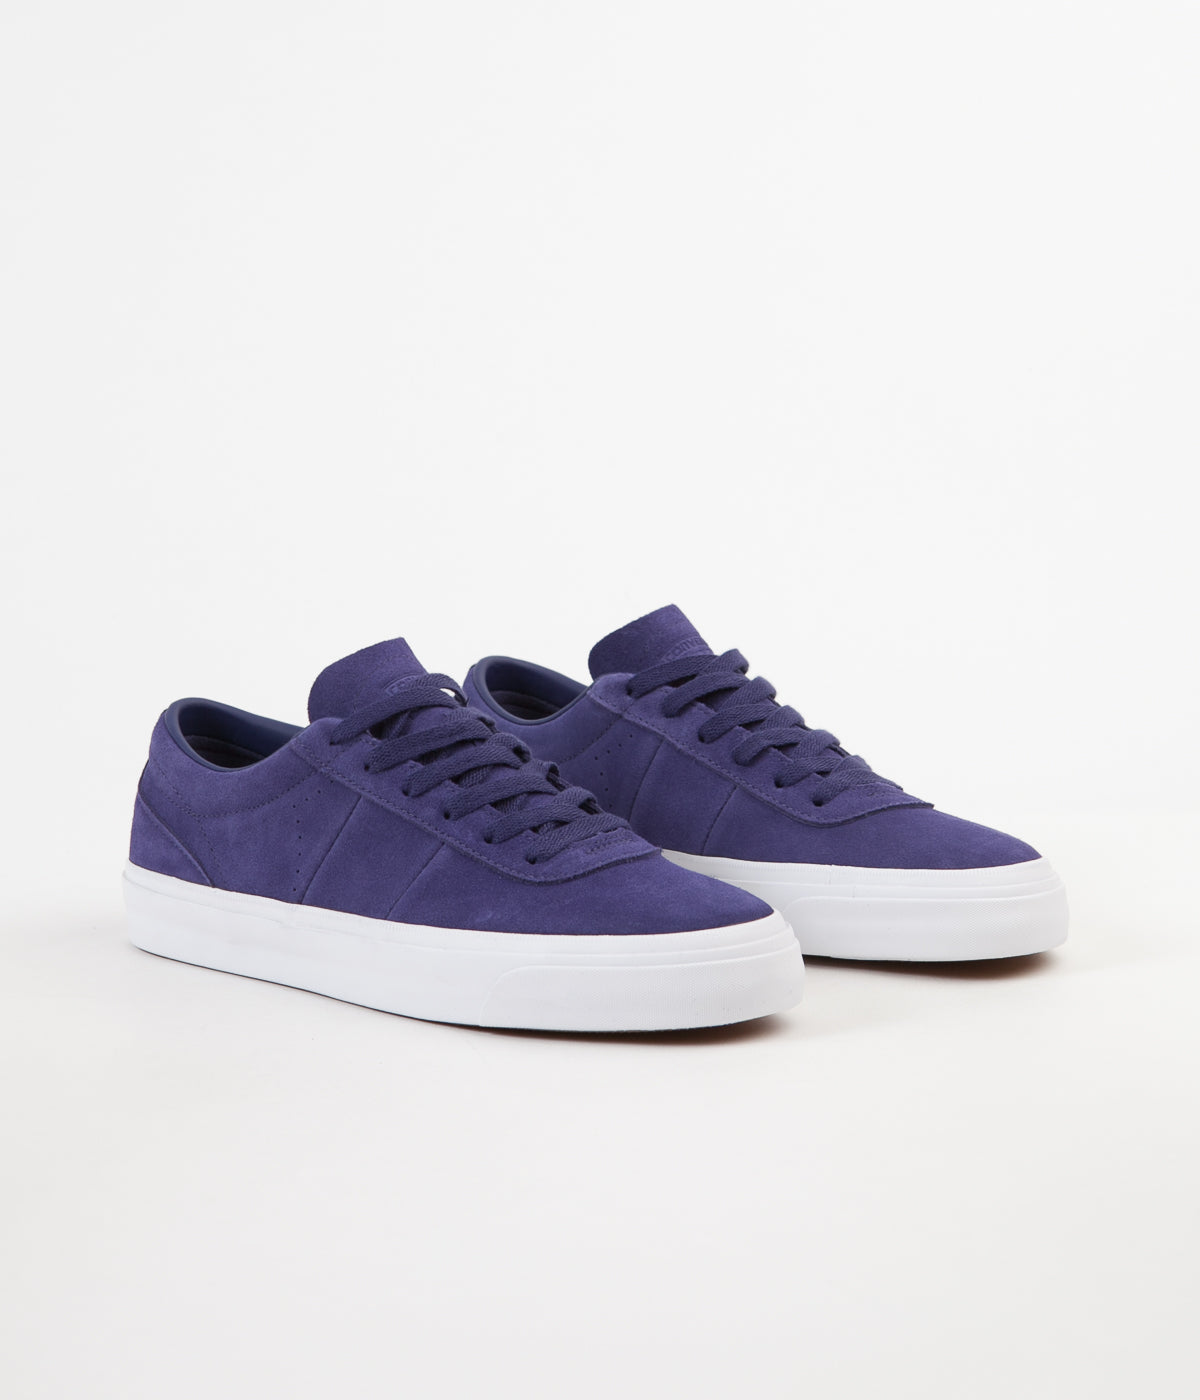 d314c1af220a63 Converse One Star CC Pro Ox  Purple Pack  Shoes - Japanese Eggplant ...